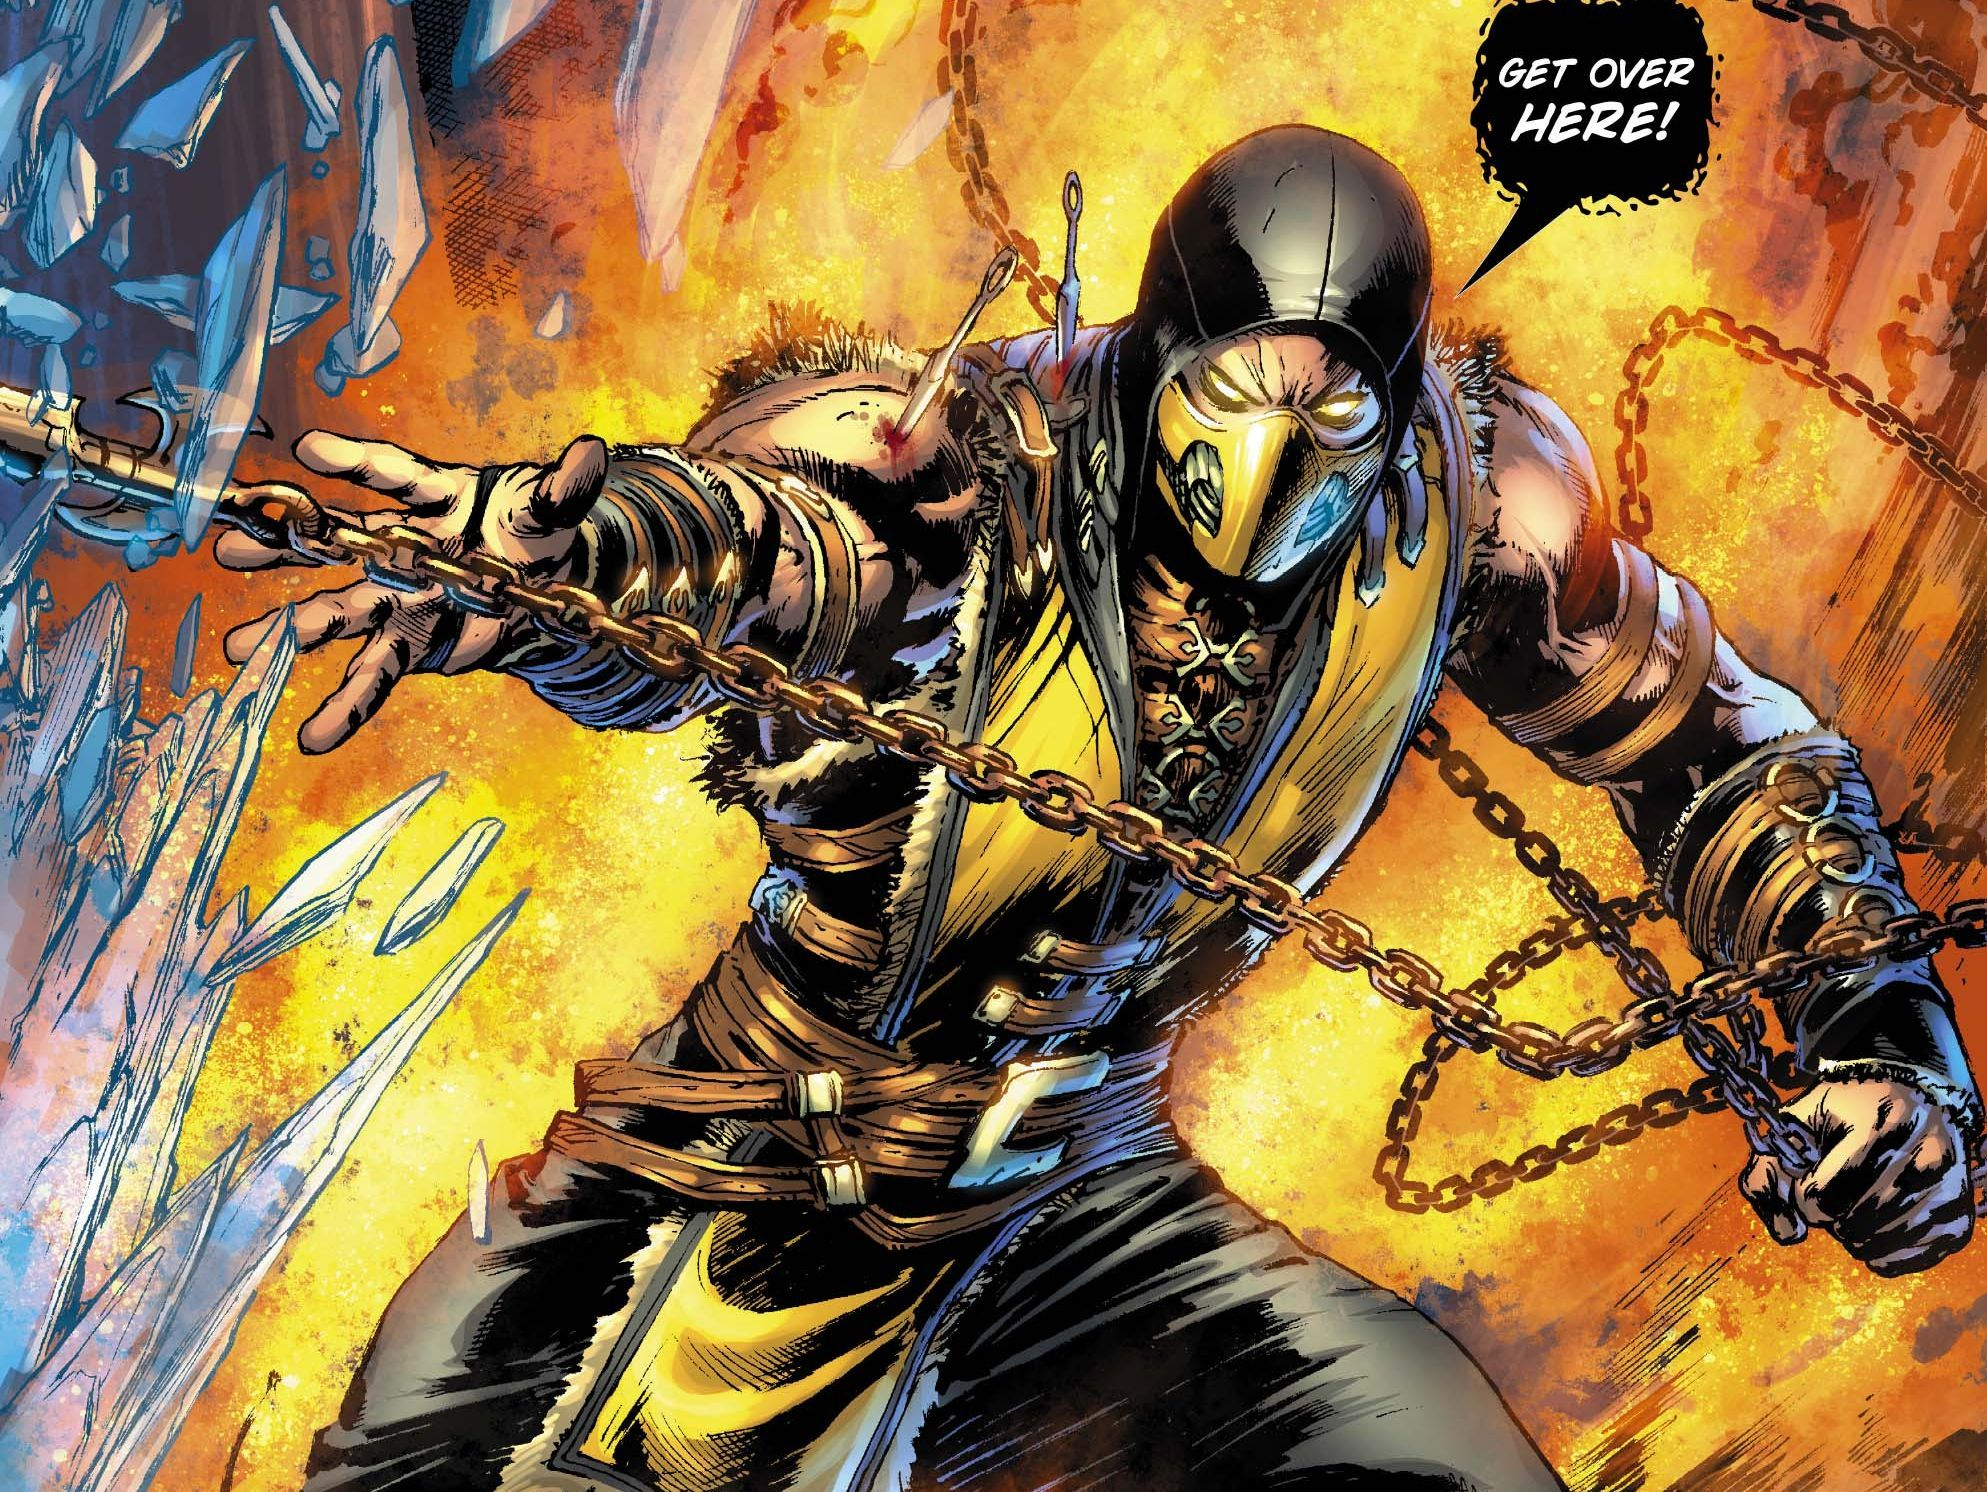 Exclusive: Get Over Here And Read This Preview Of 'Mortal Kombat X #1' - MTV